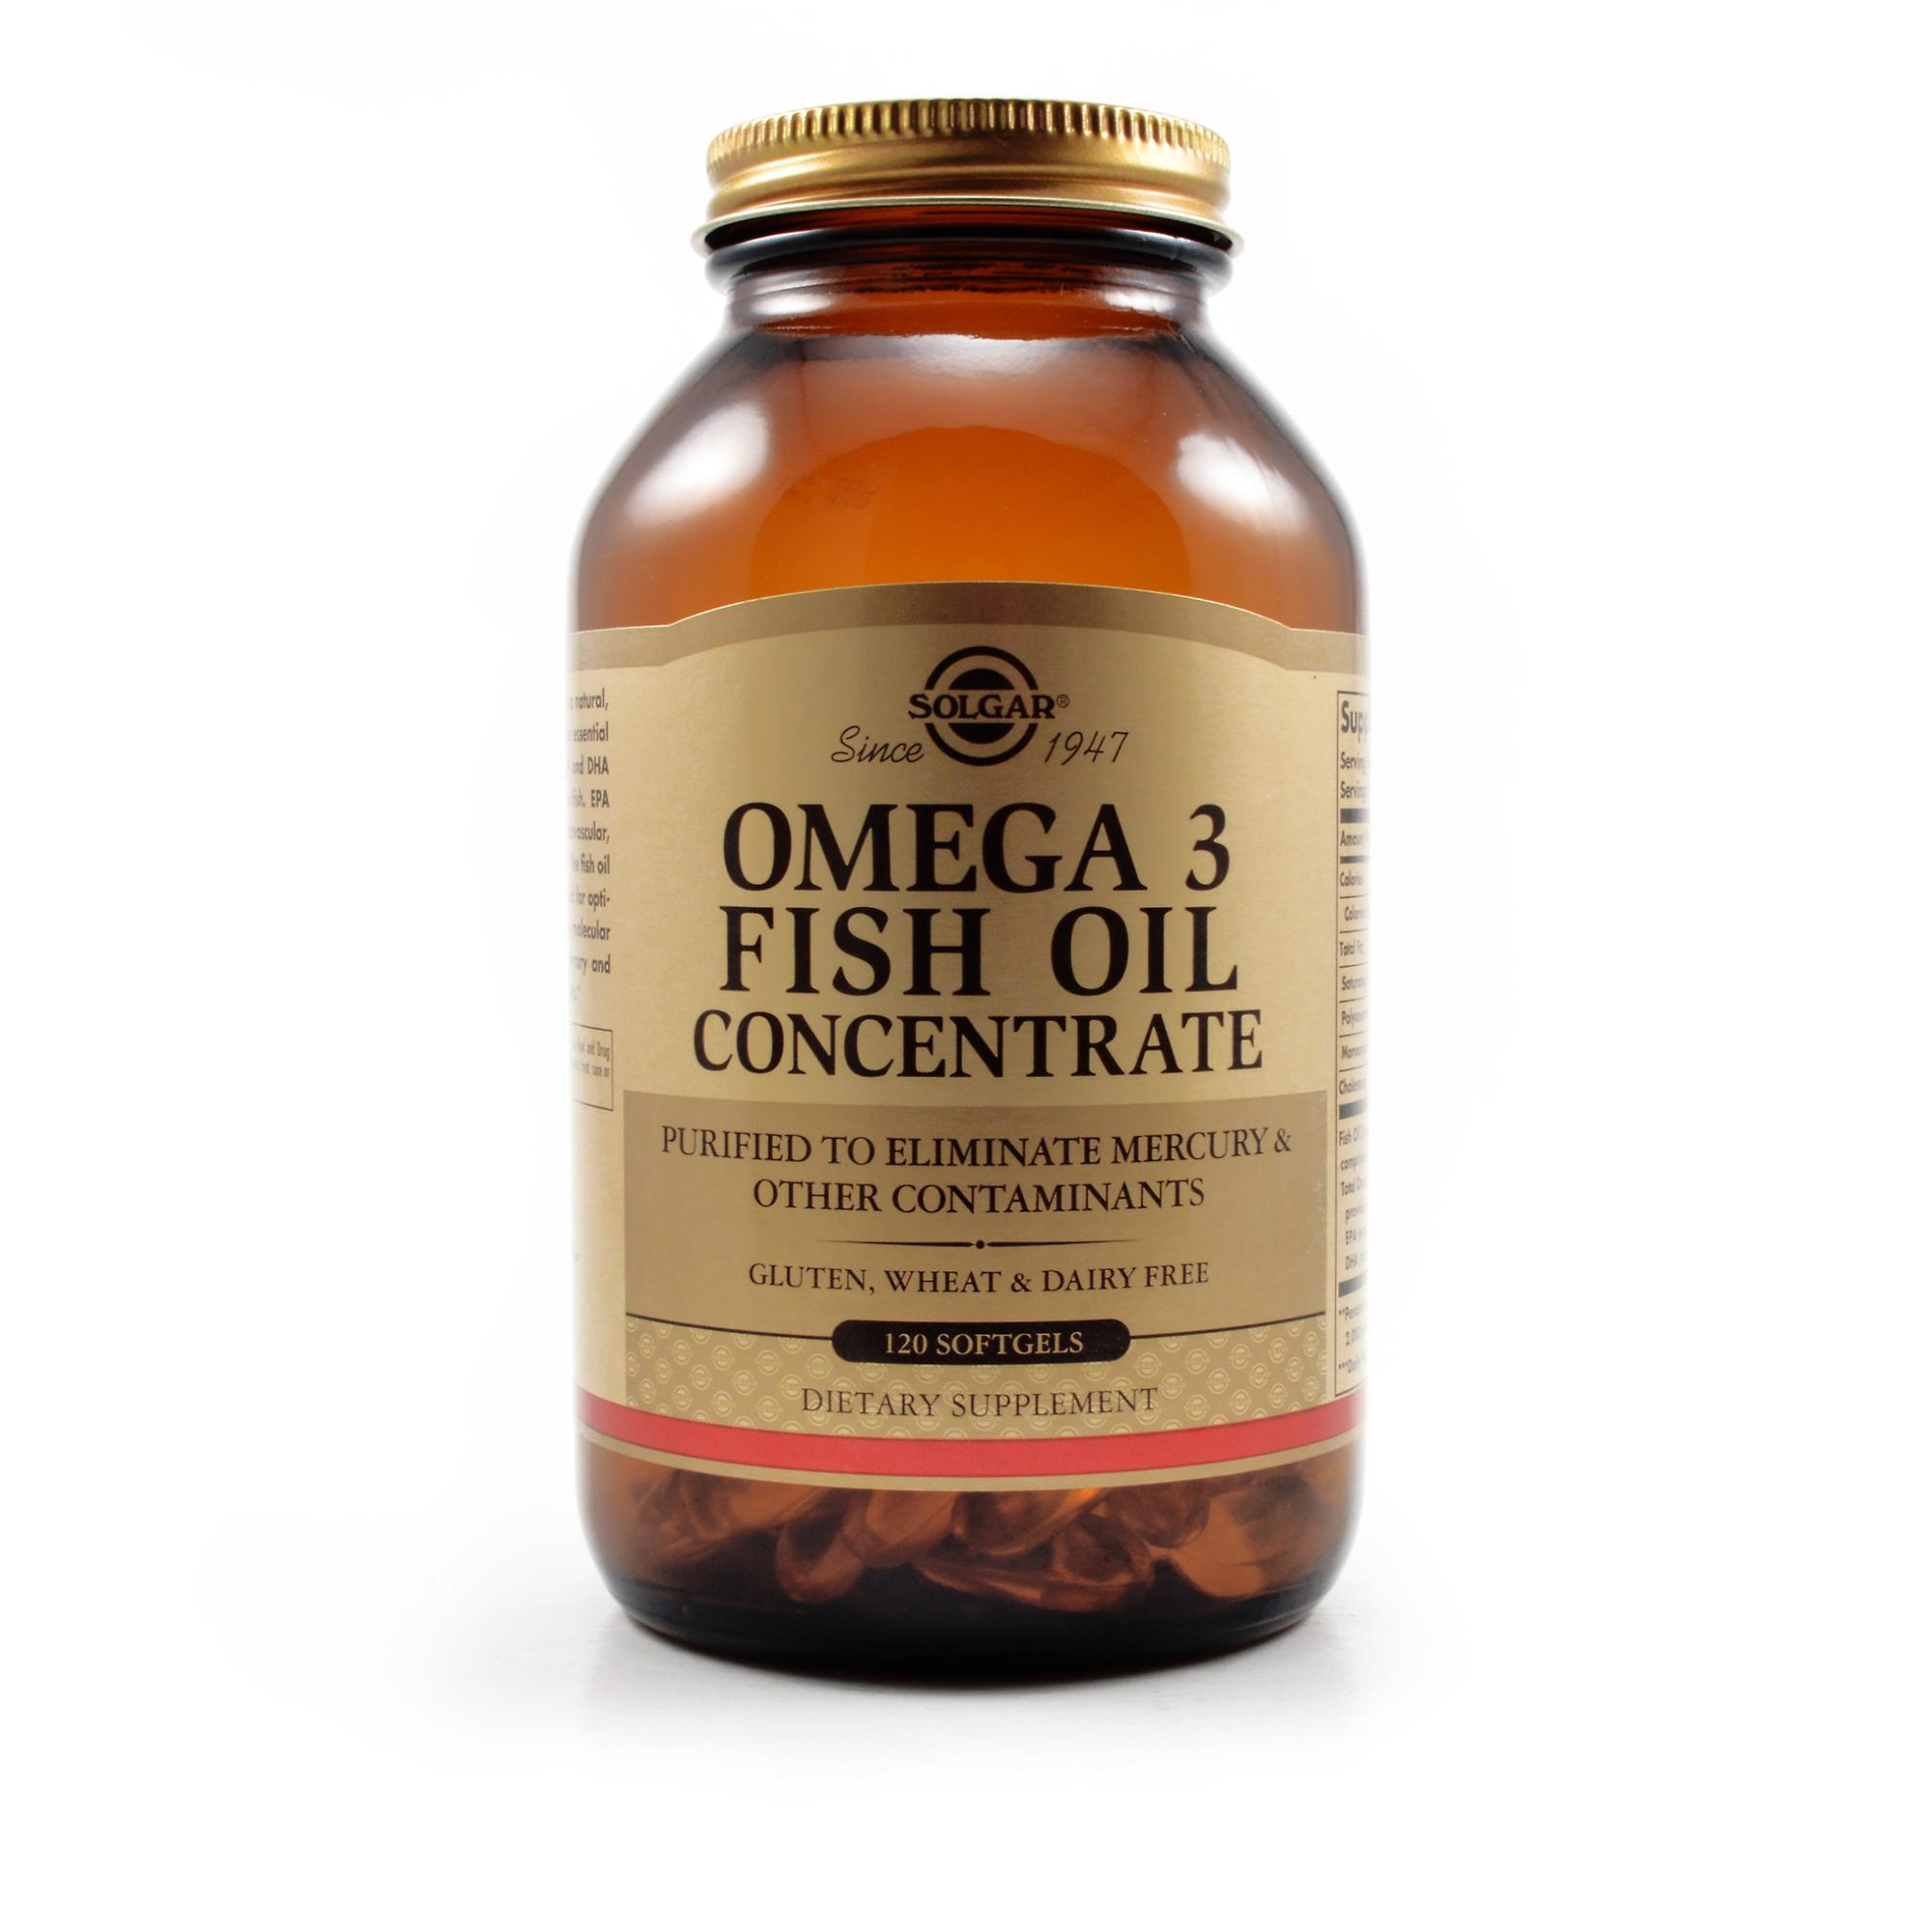 Solgar omega 3 fish oil concentrate review labdoor for Omega 3 fish oil reviews